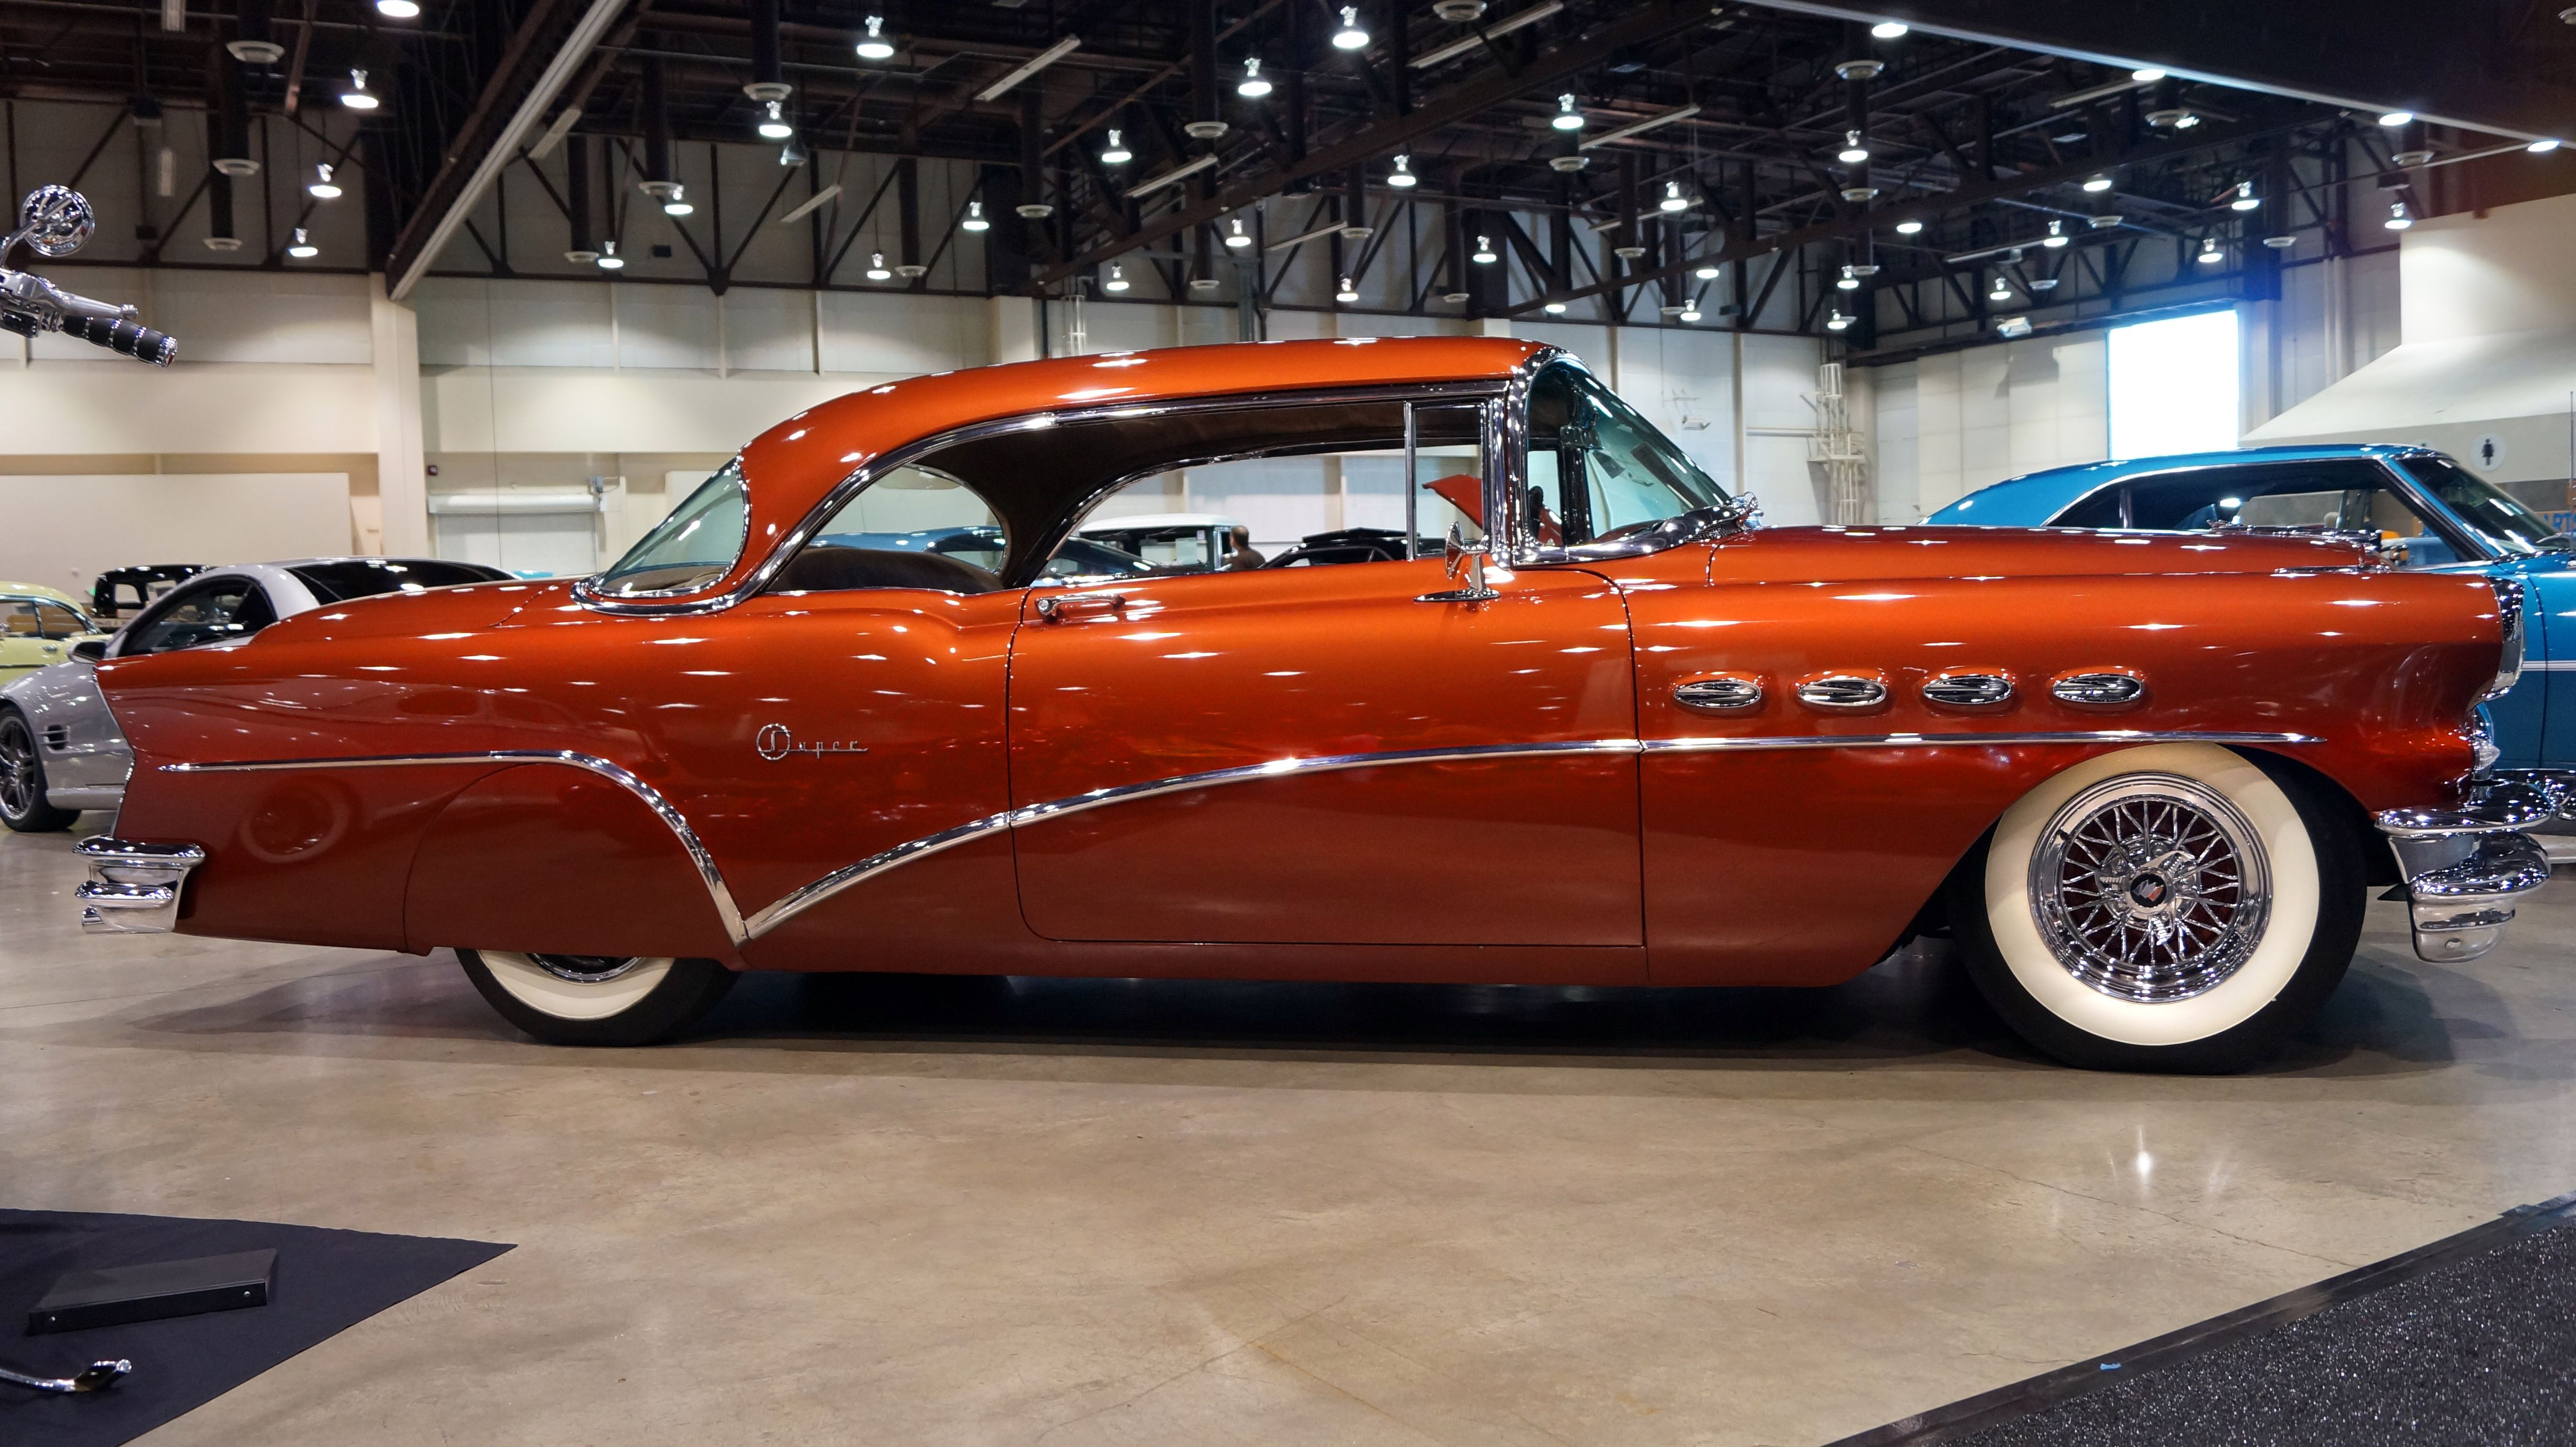 This One Off Custom 1956 Buick Super Practically Glows